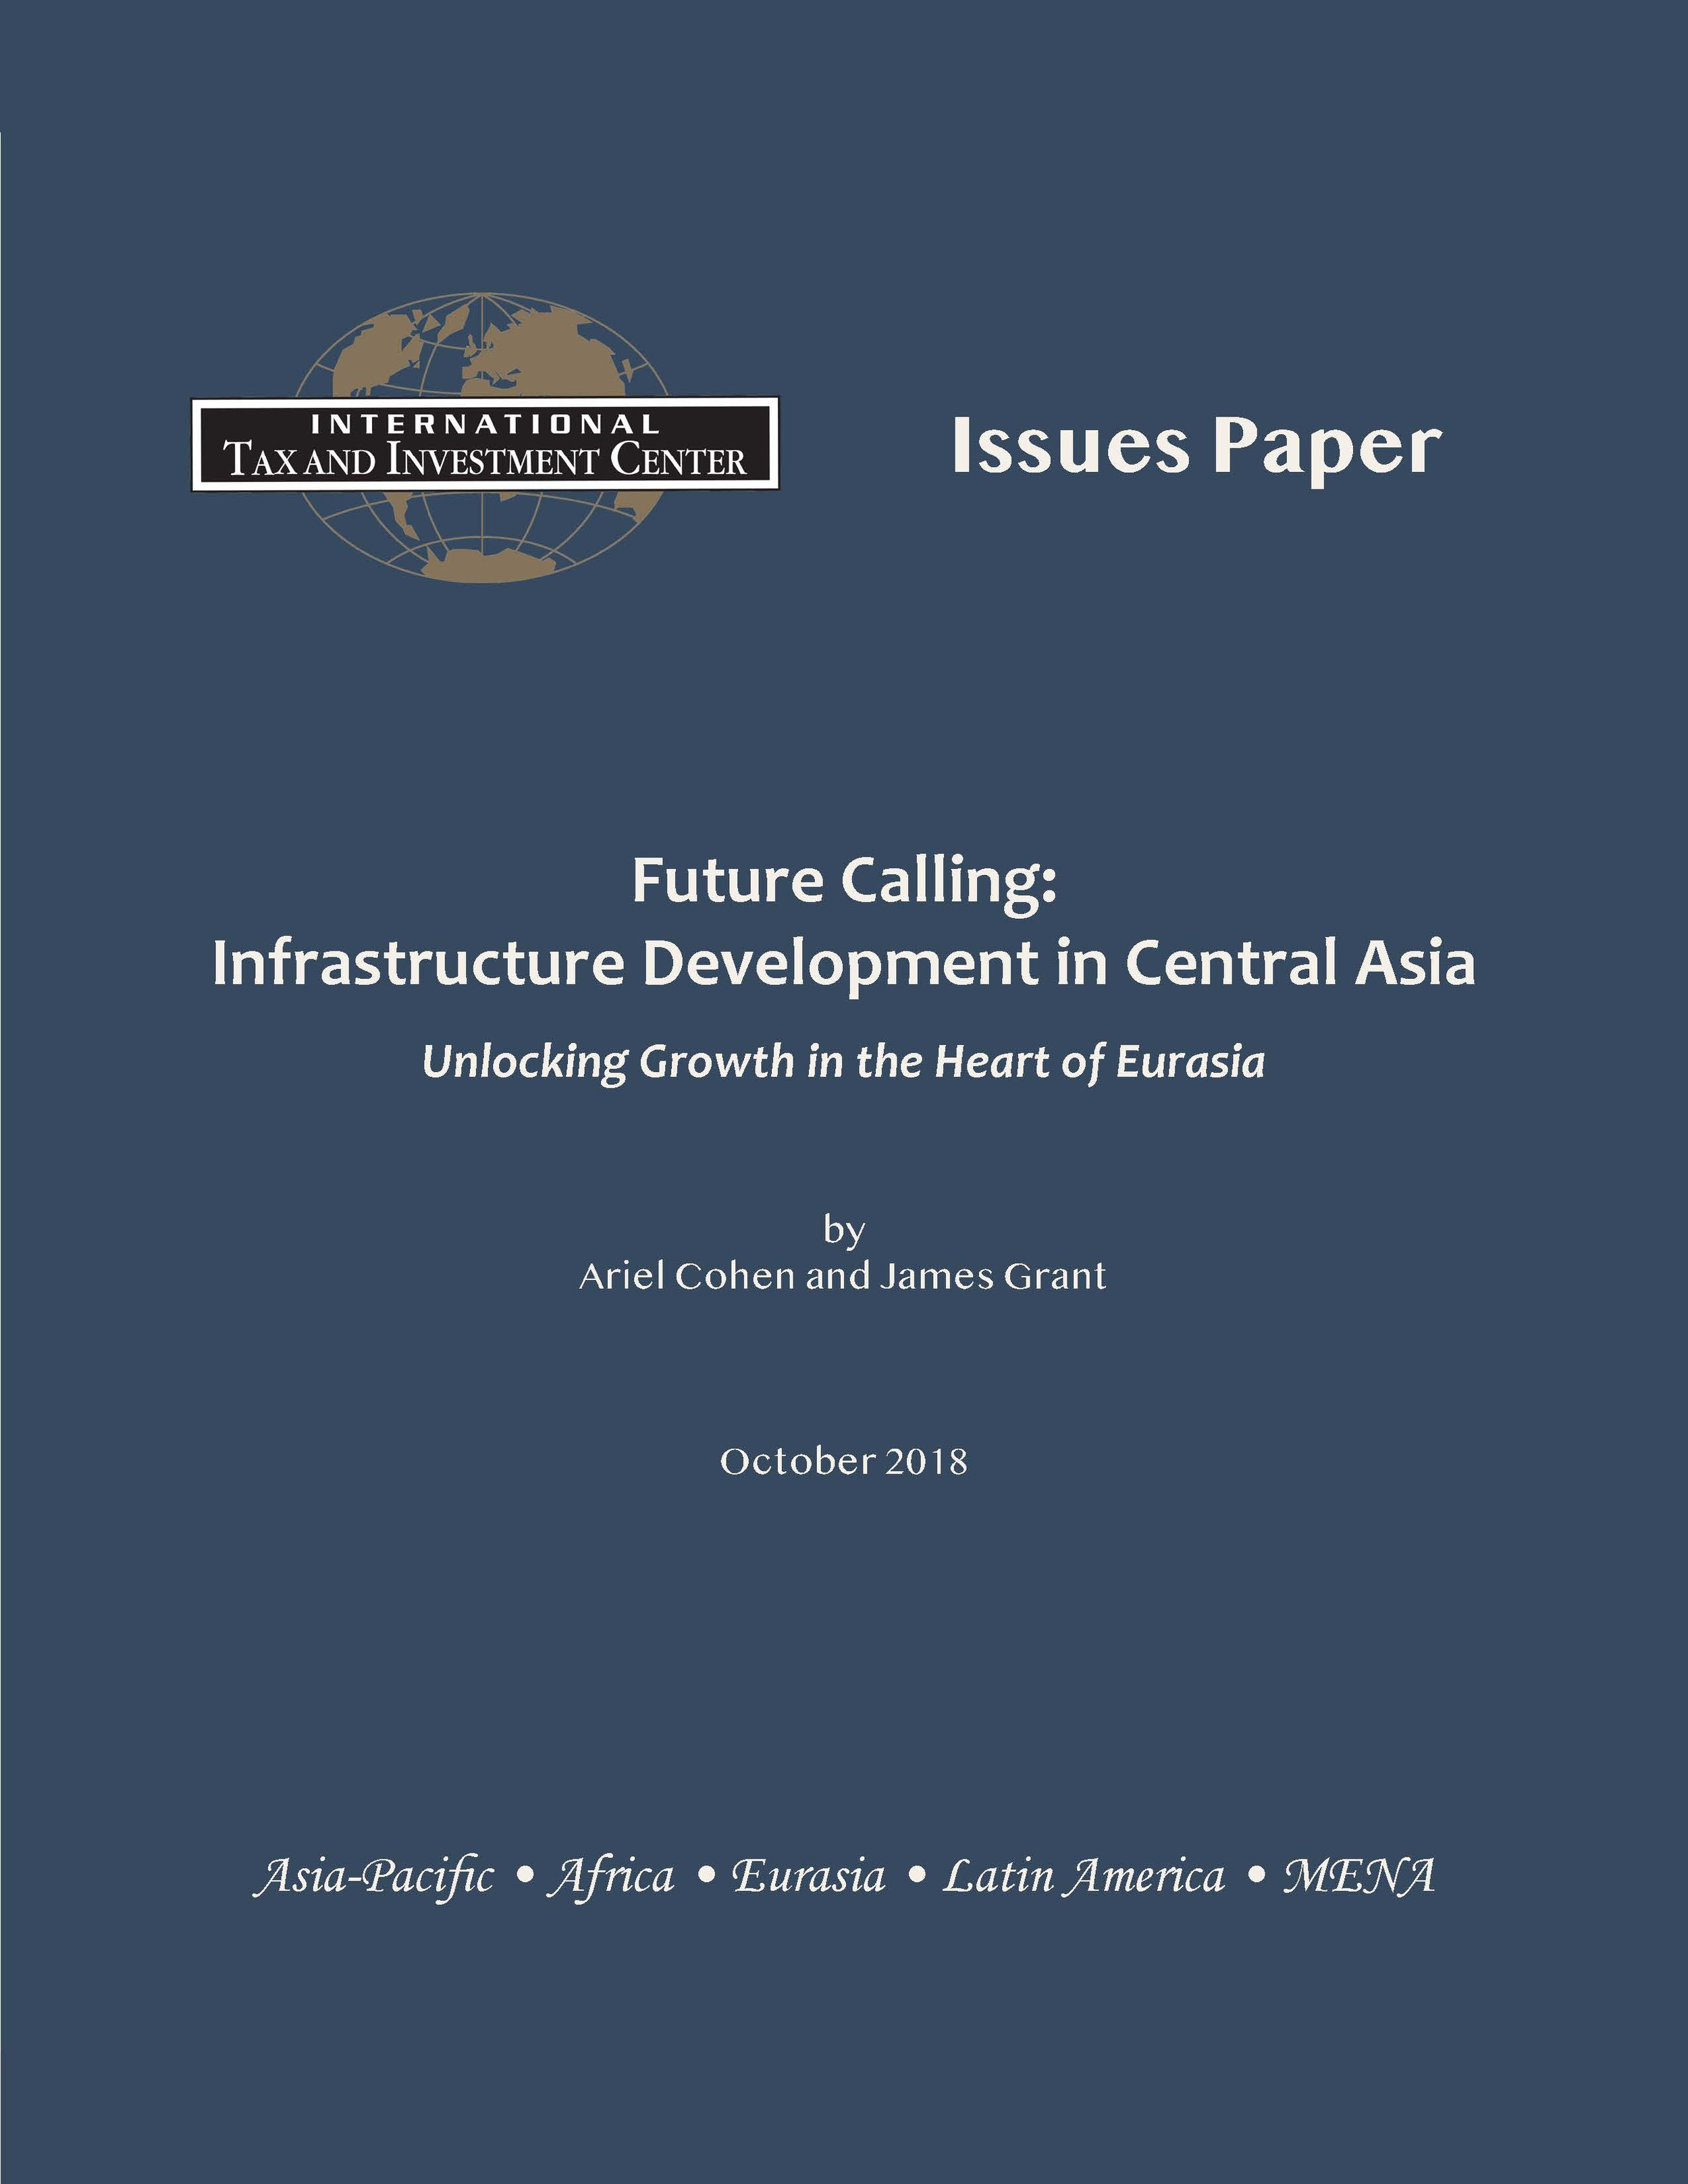 Pages from Infrastructure Development in Central Asia.jpg